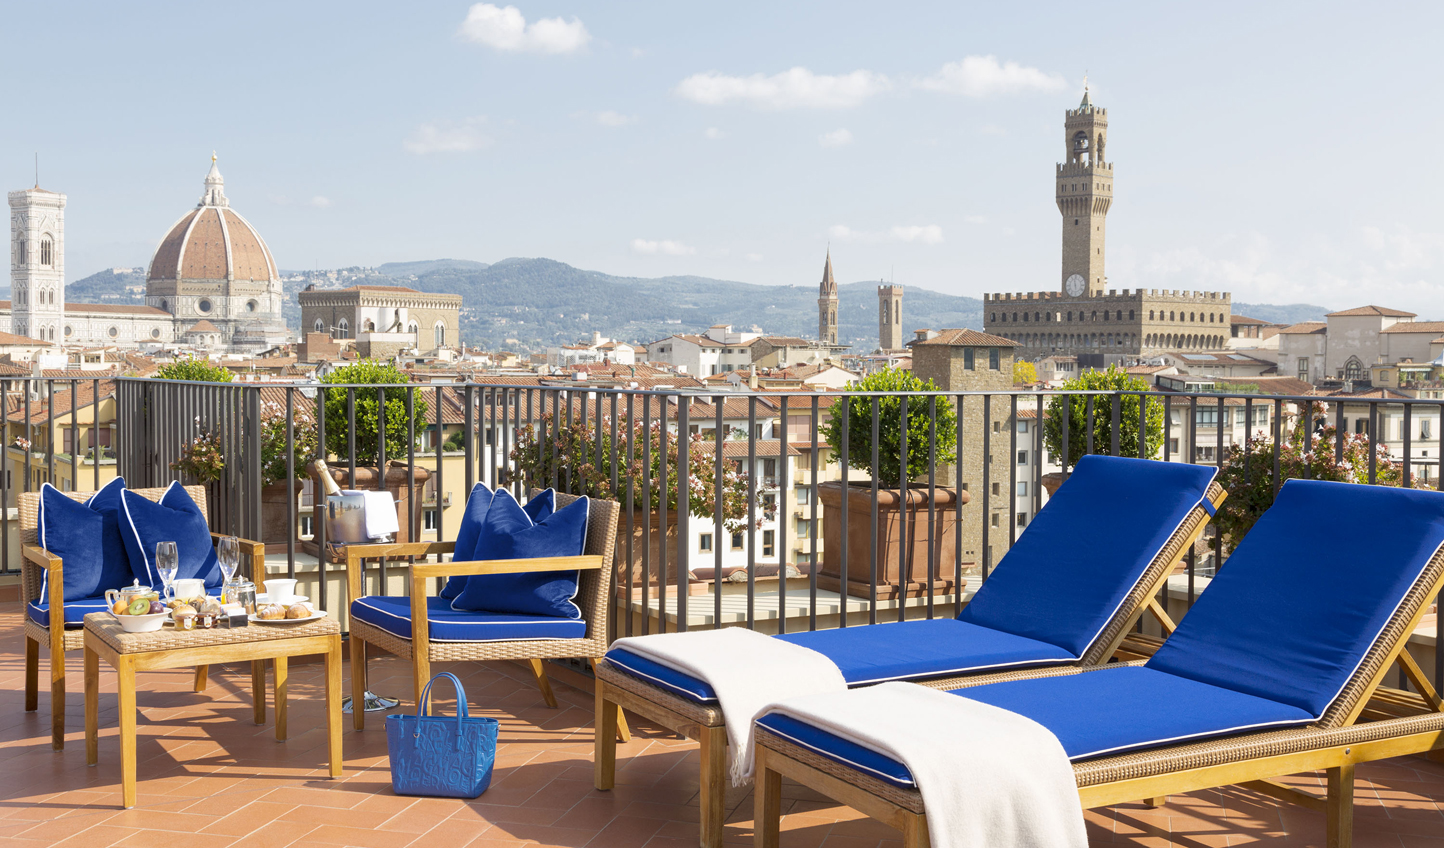 From the river to the Duomo, see it all in the Rooftop Terrace Suite